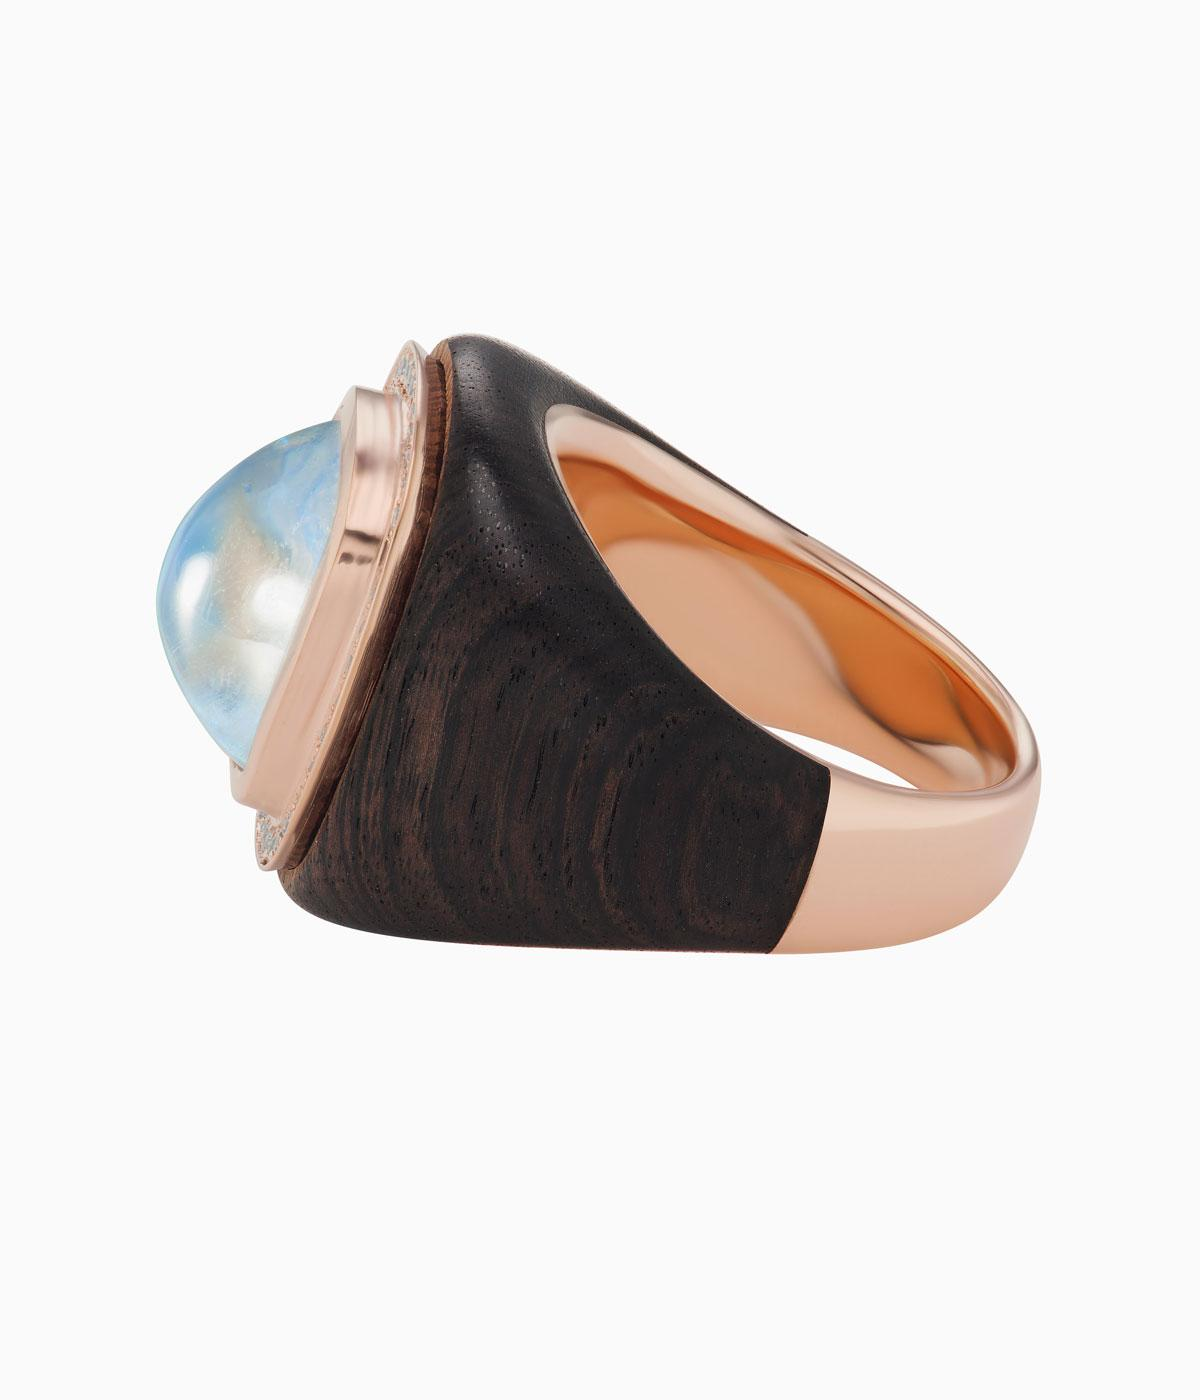 Emily P Wheeler jewellery made from wood